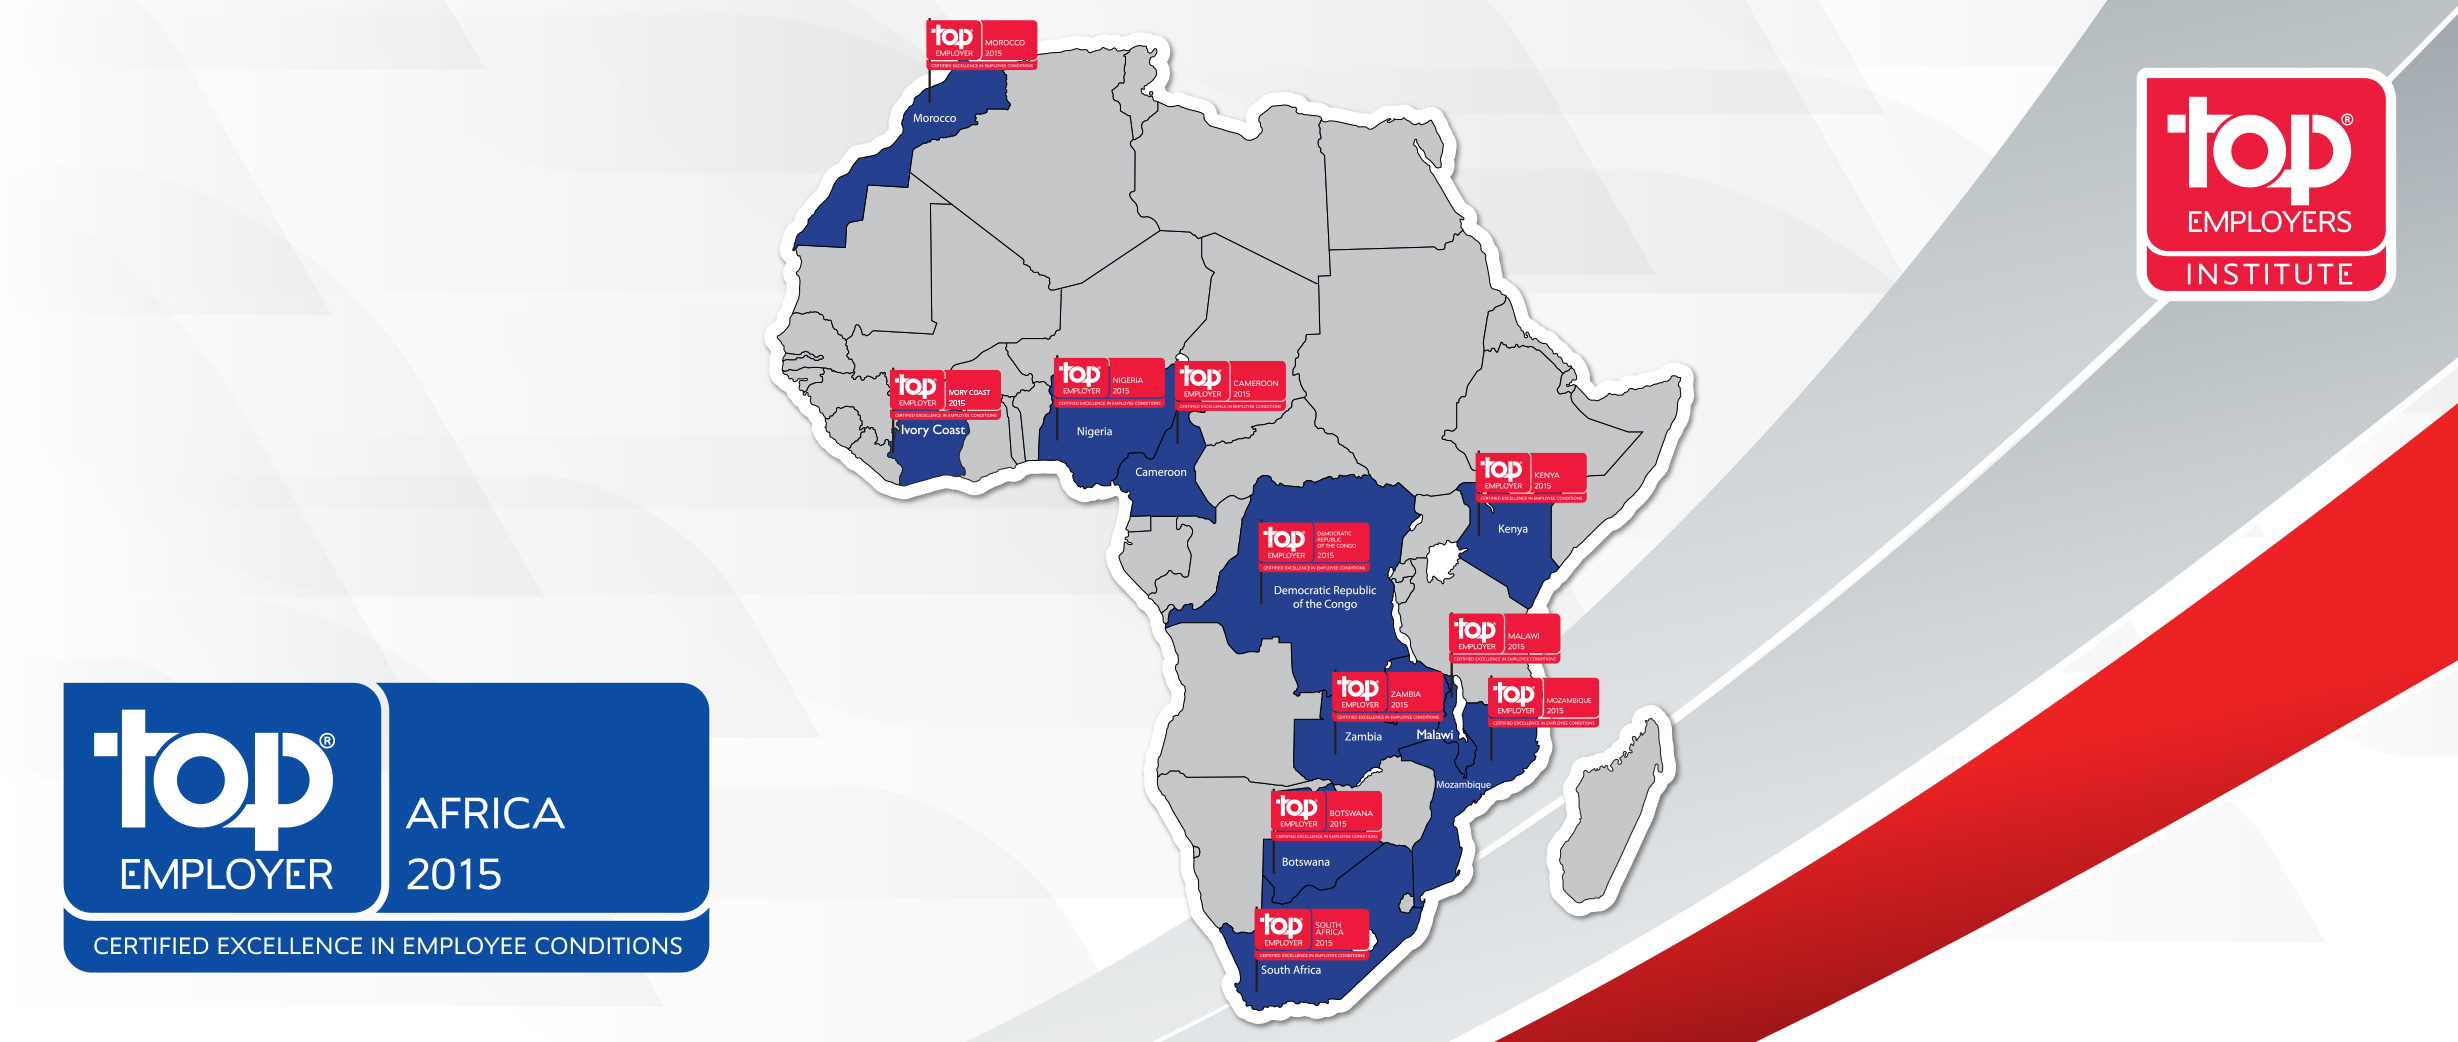 The CRF Institute recognised G4S as a Top Employer in Africa for 2012/13 in eleven African countries.